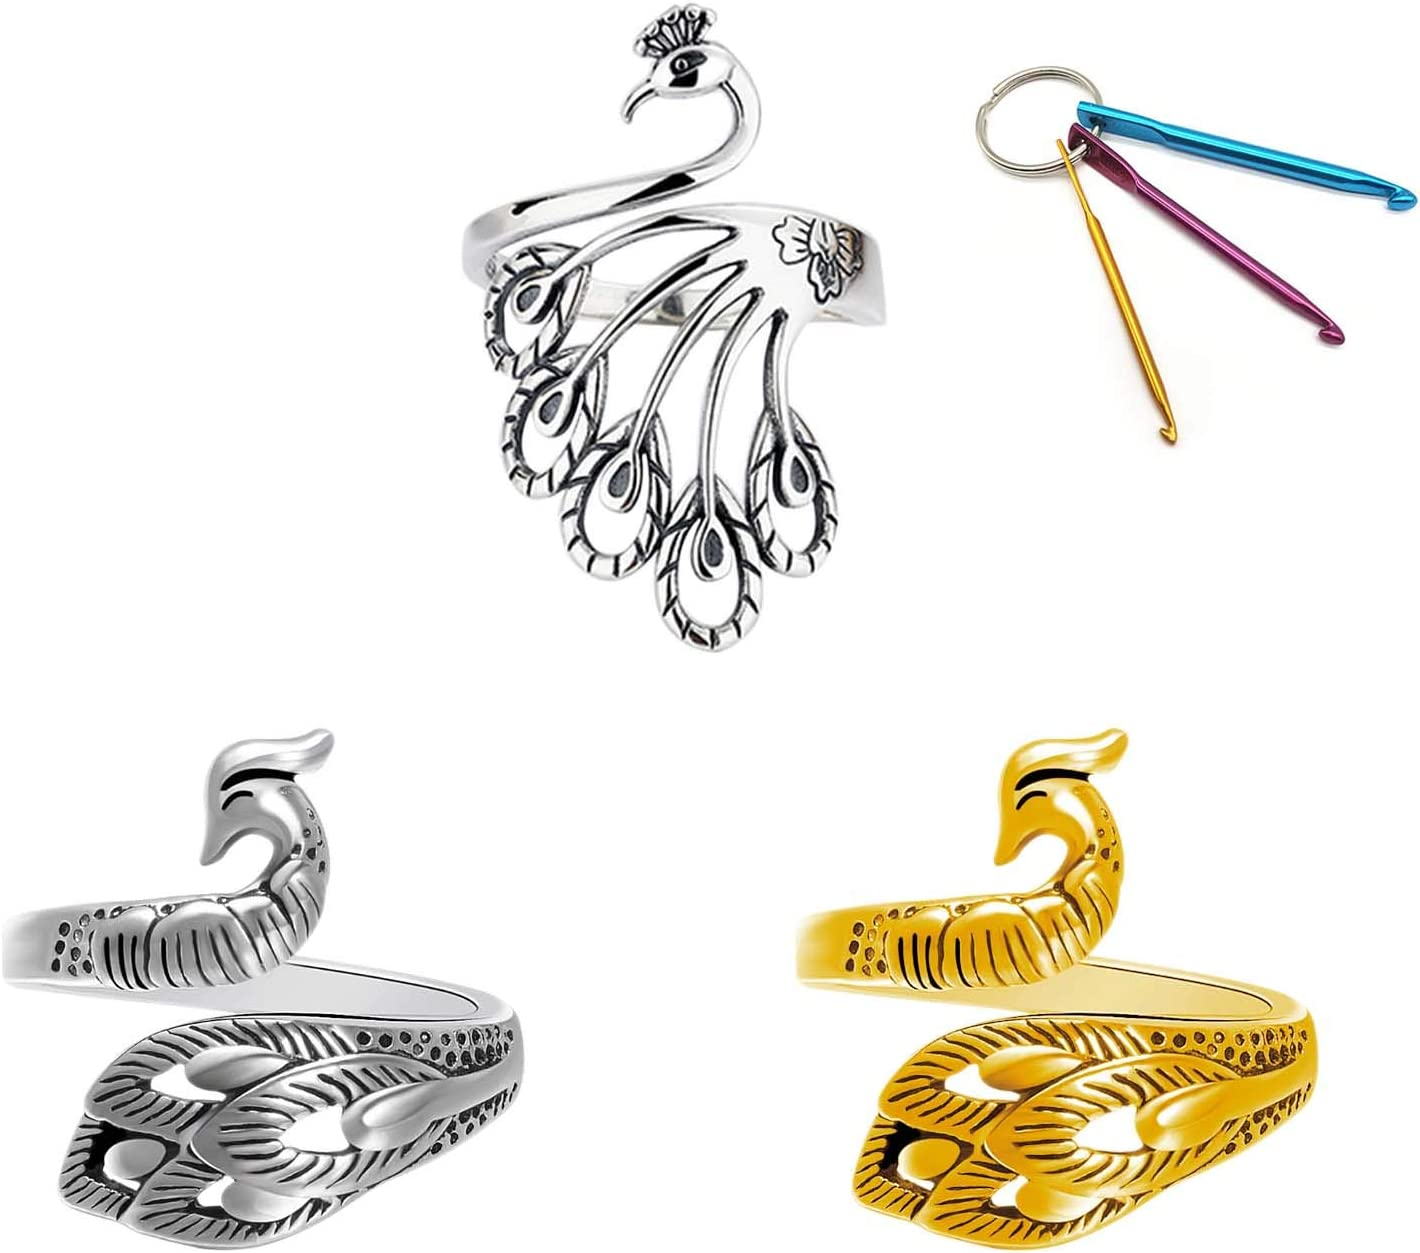 Adjustable Knitting Loop Ring Accessories 3 Style Max 70% Max 63% OFF OFF Prem